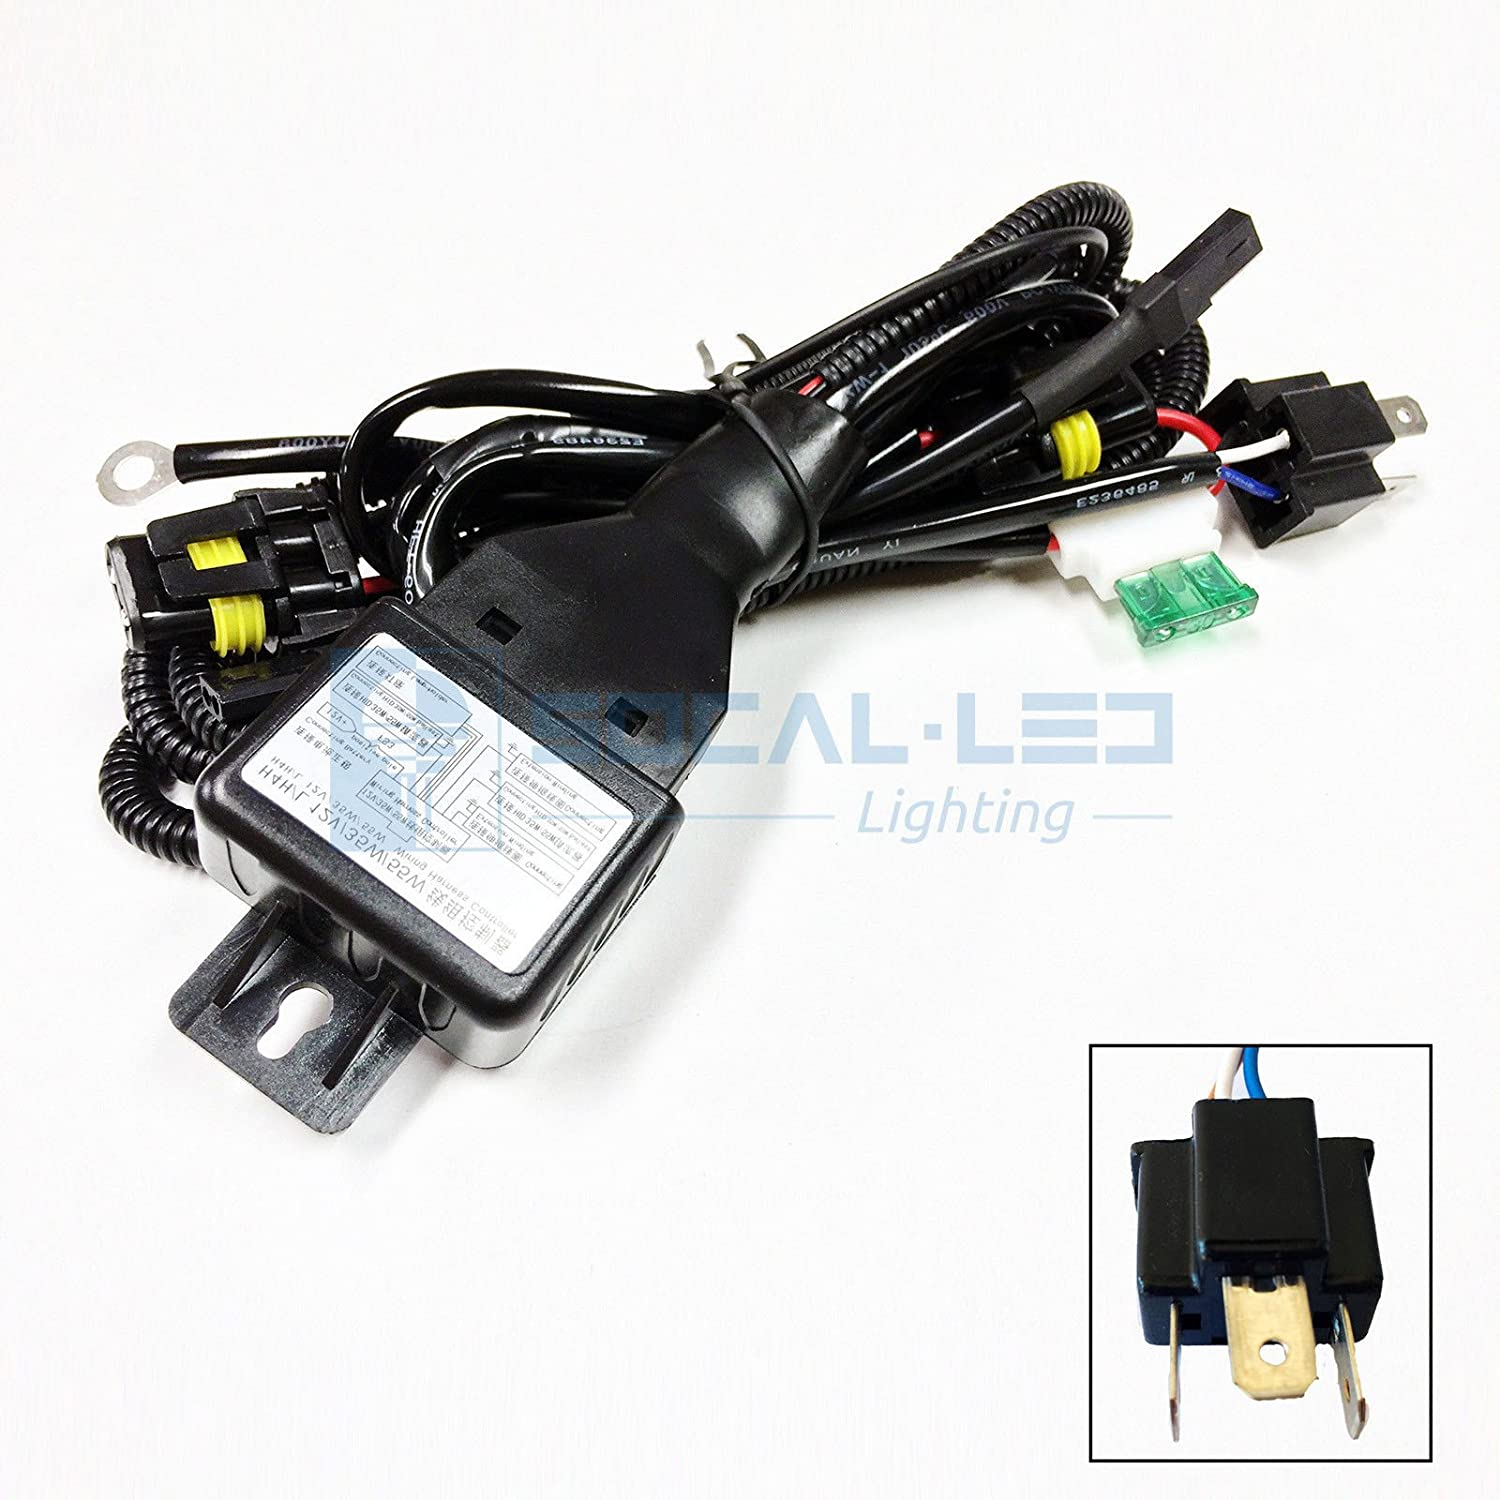 81lX2OBNA6L._SL1500_ amazon com o nex hid relay harness 9007 (hb5 9004) 12v 35w 55w bi hid 12v wiring harness controller at creativeand.co